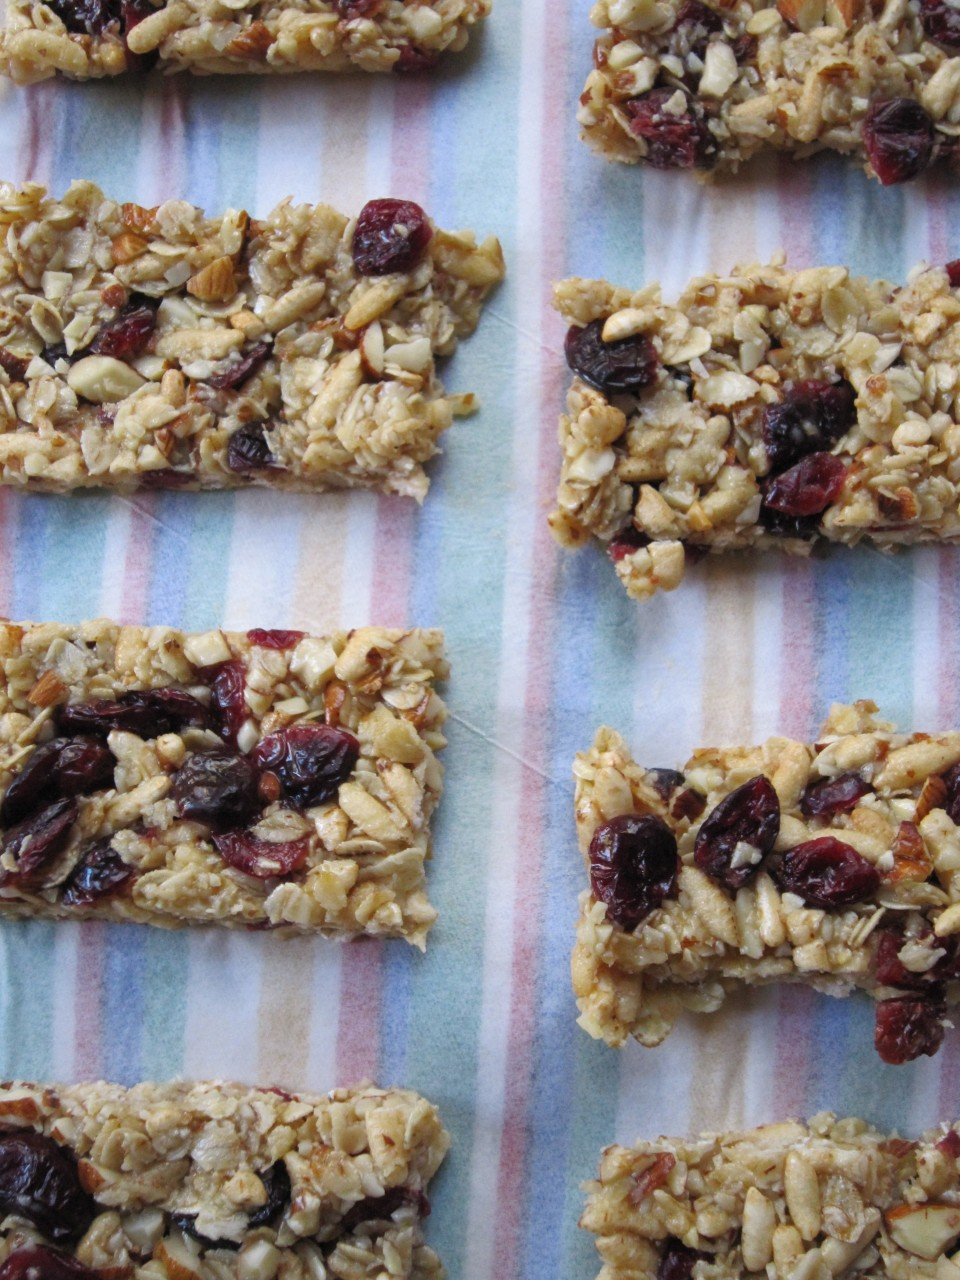 Make: Super Easy Cereal Bars